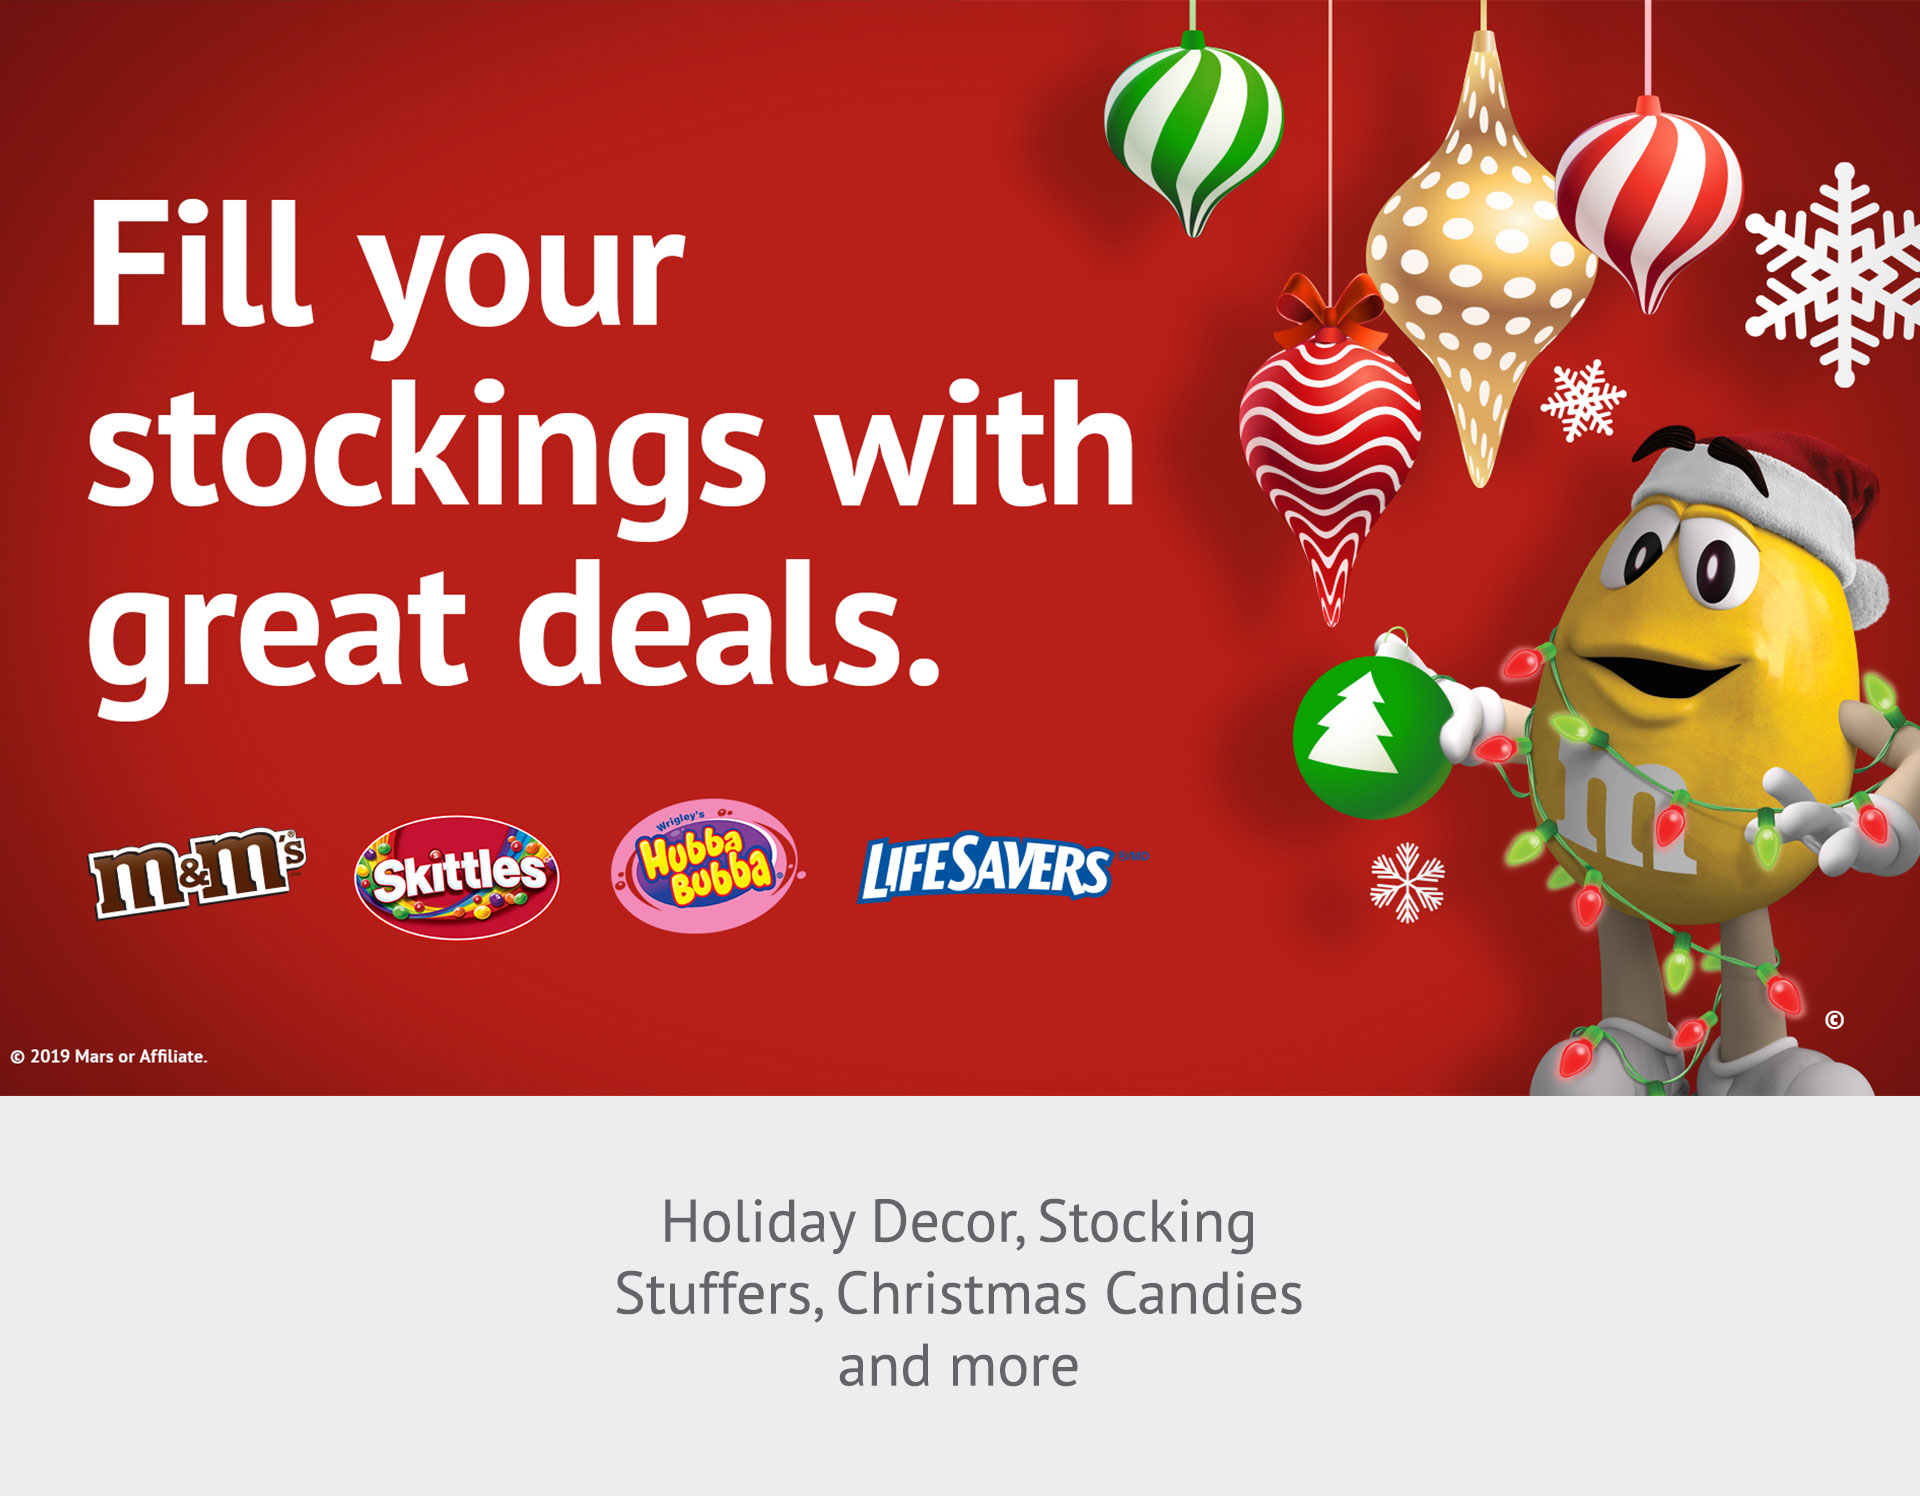 Fill Your Stockings with Great Deals